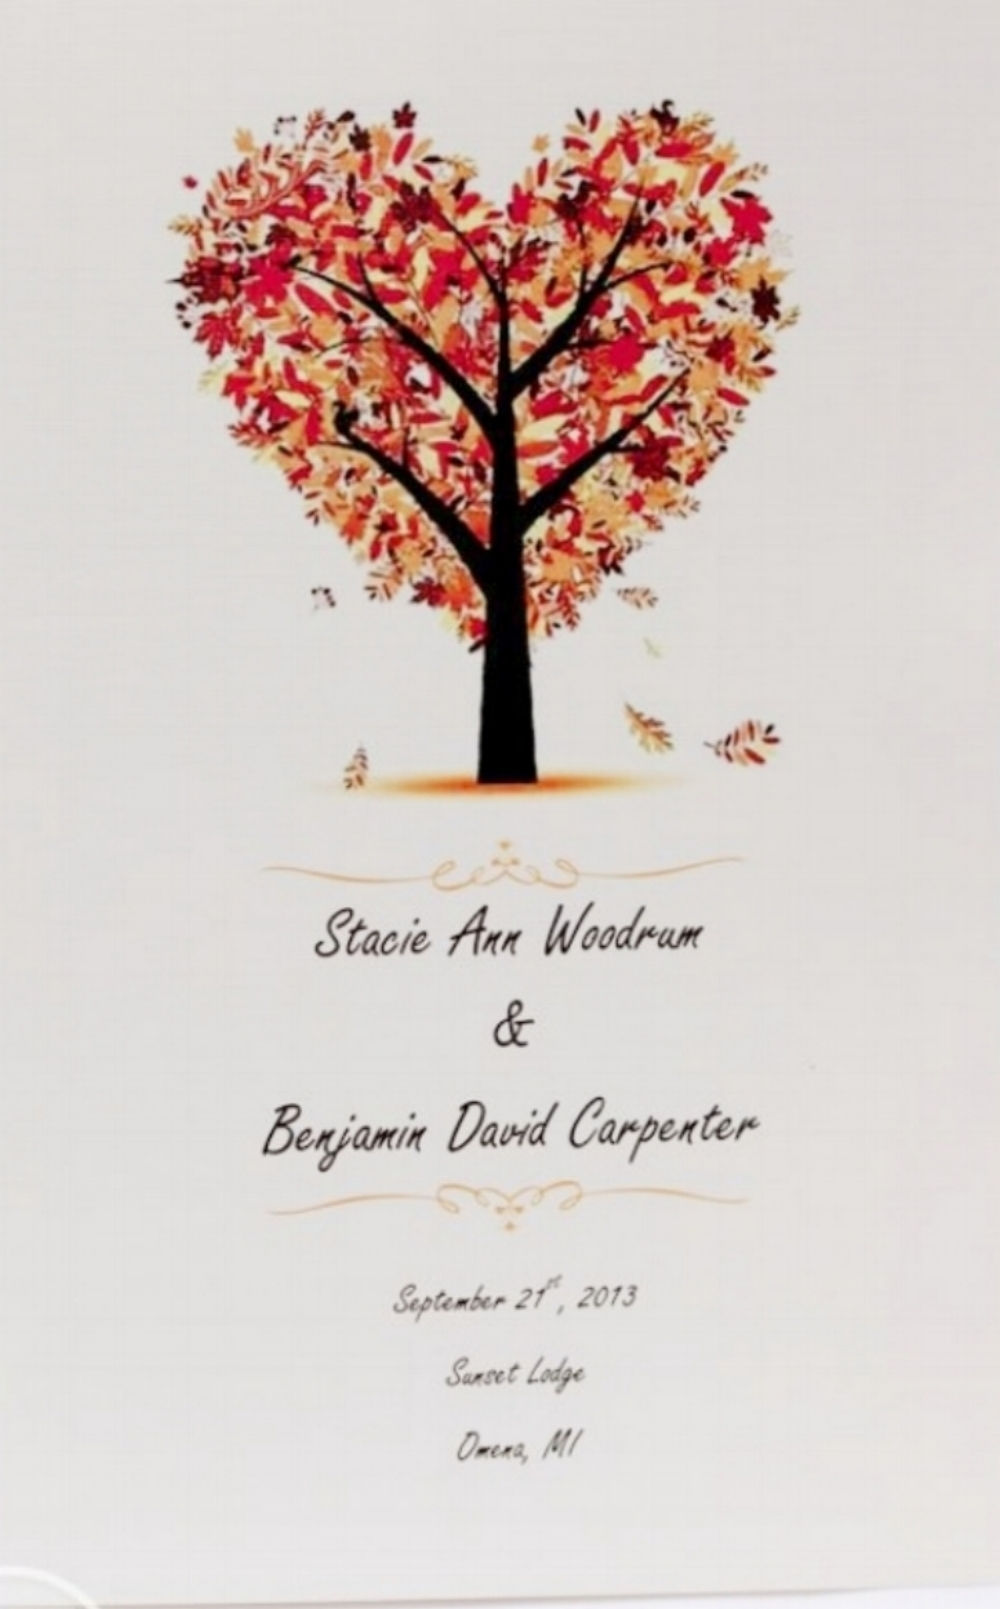 Fall Leaves Heart Tree Invitation.jpg